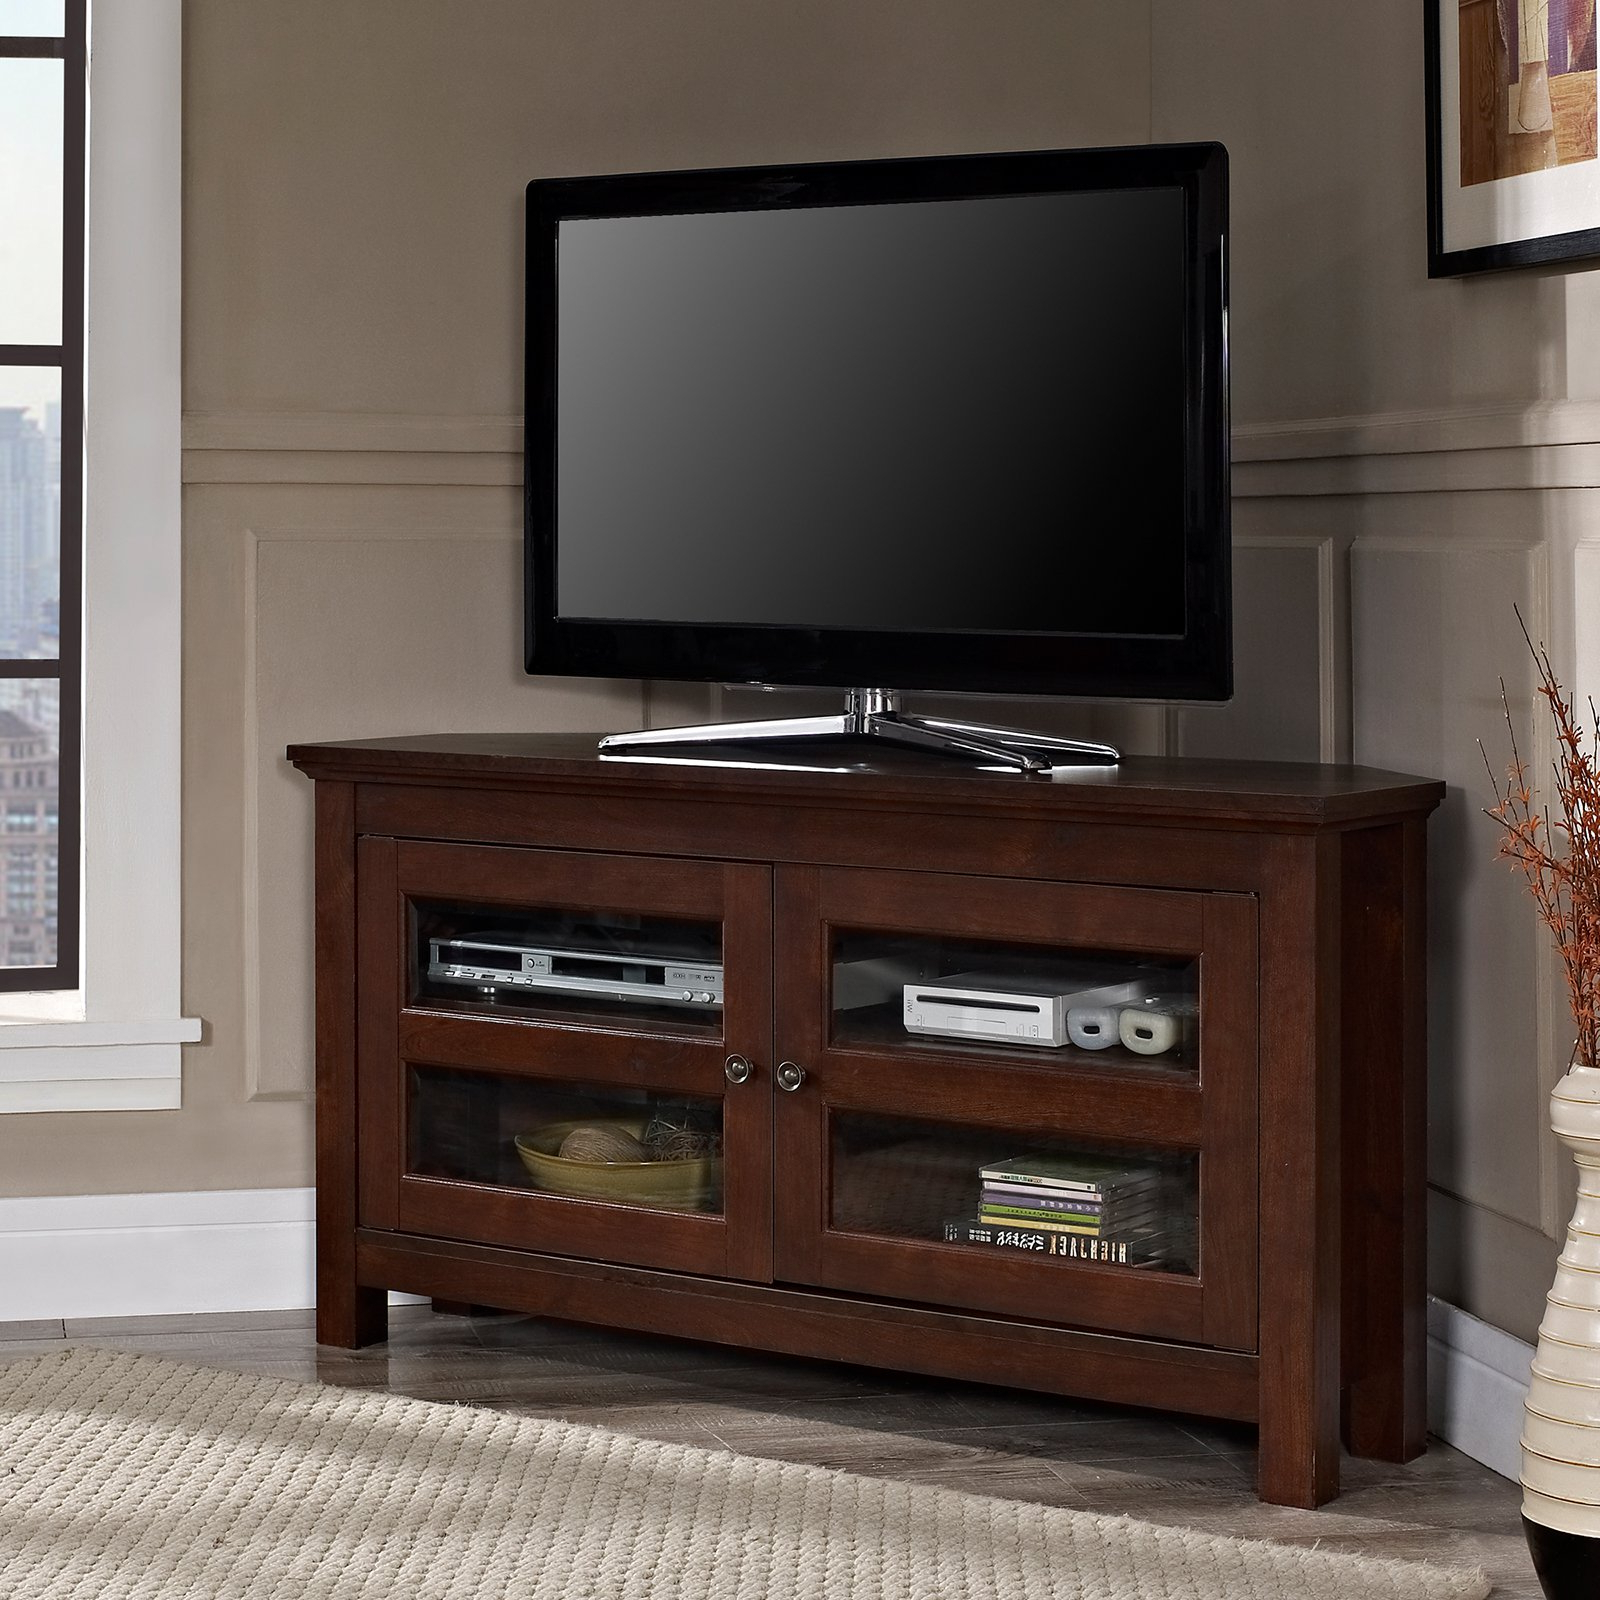 Reclaimed Wood Tv Console Real Stands For Flat Screens Solid Corner Pertaining To Widely Used Light Oak Tv Stands Flat Screen (View 16 of 20)